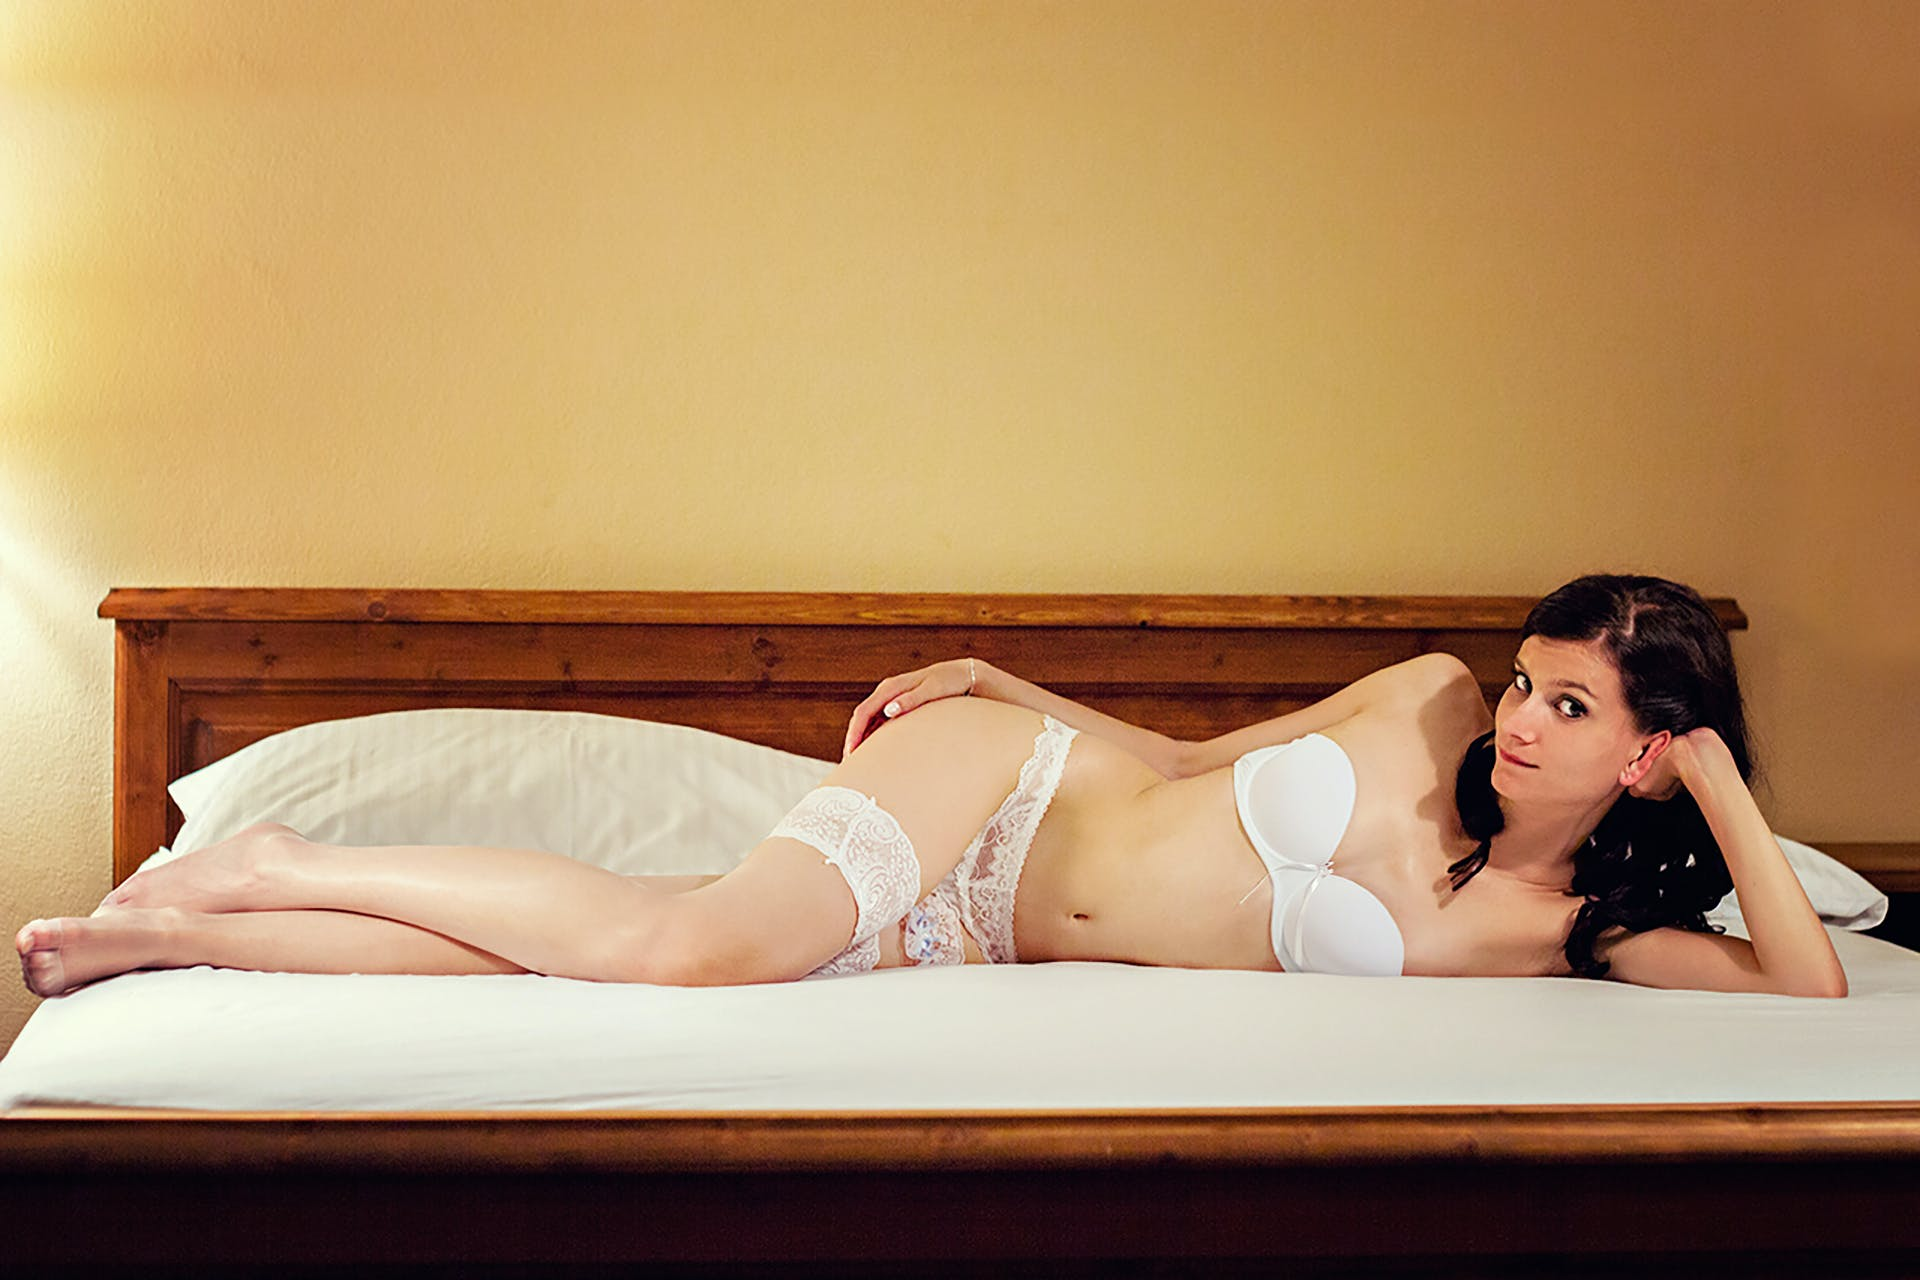 Free stock photo of woman, legs, bed, body